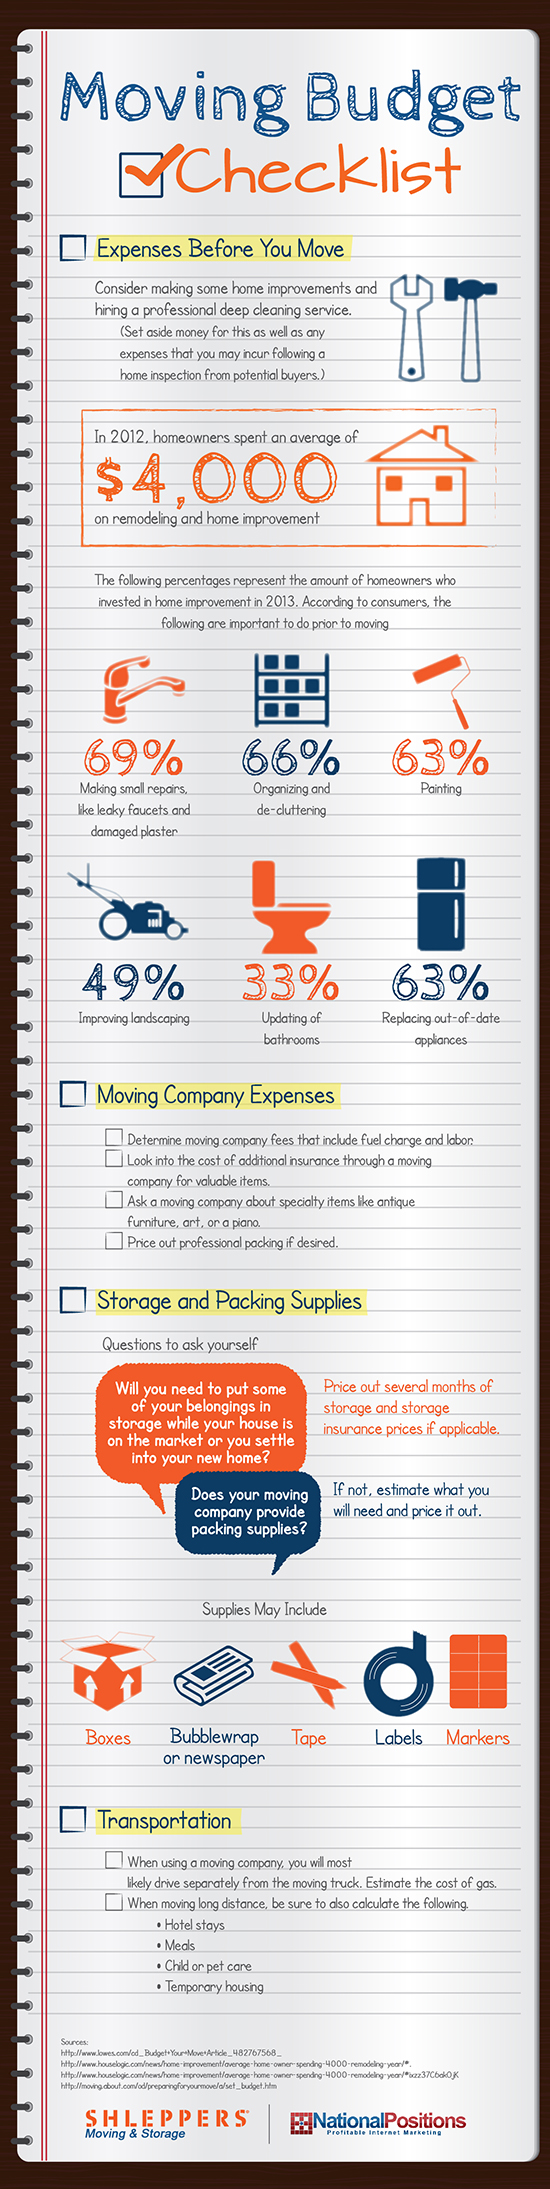 Moving Budget Checklist